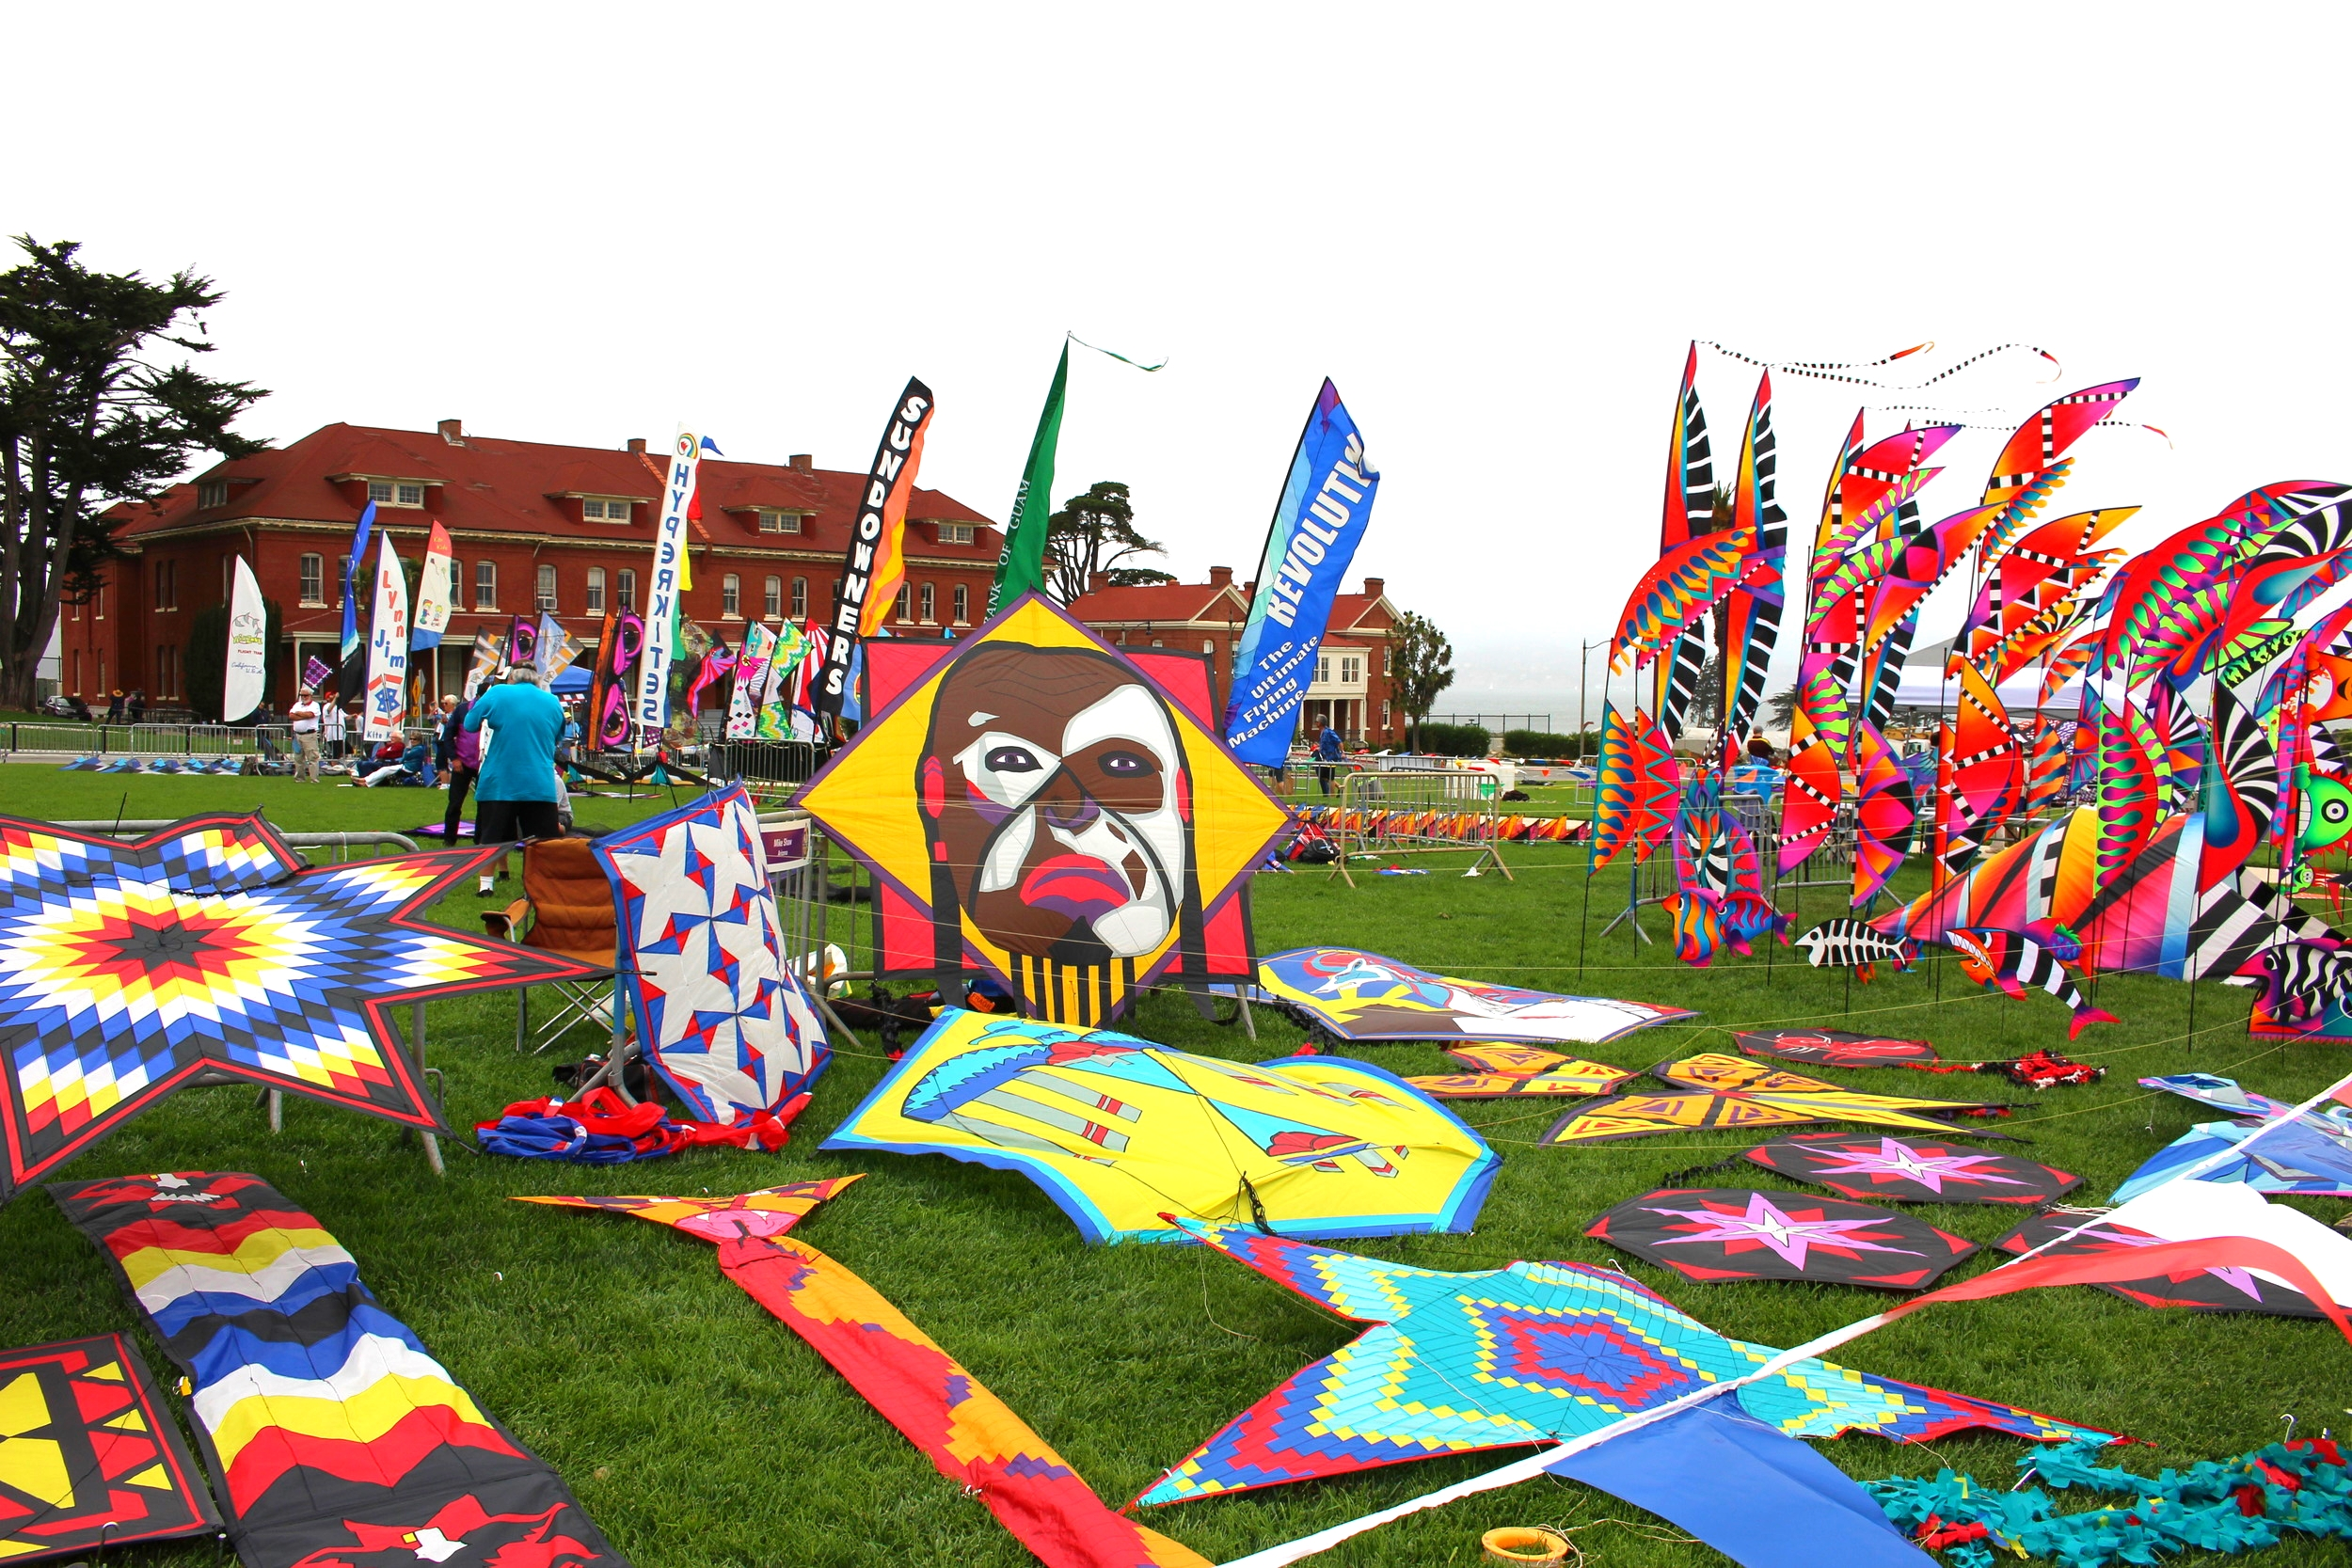 Look at this amazing kites!